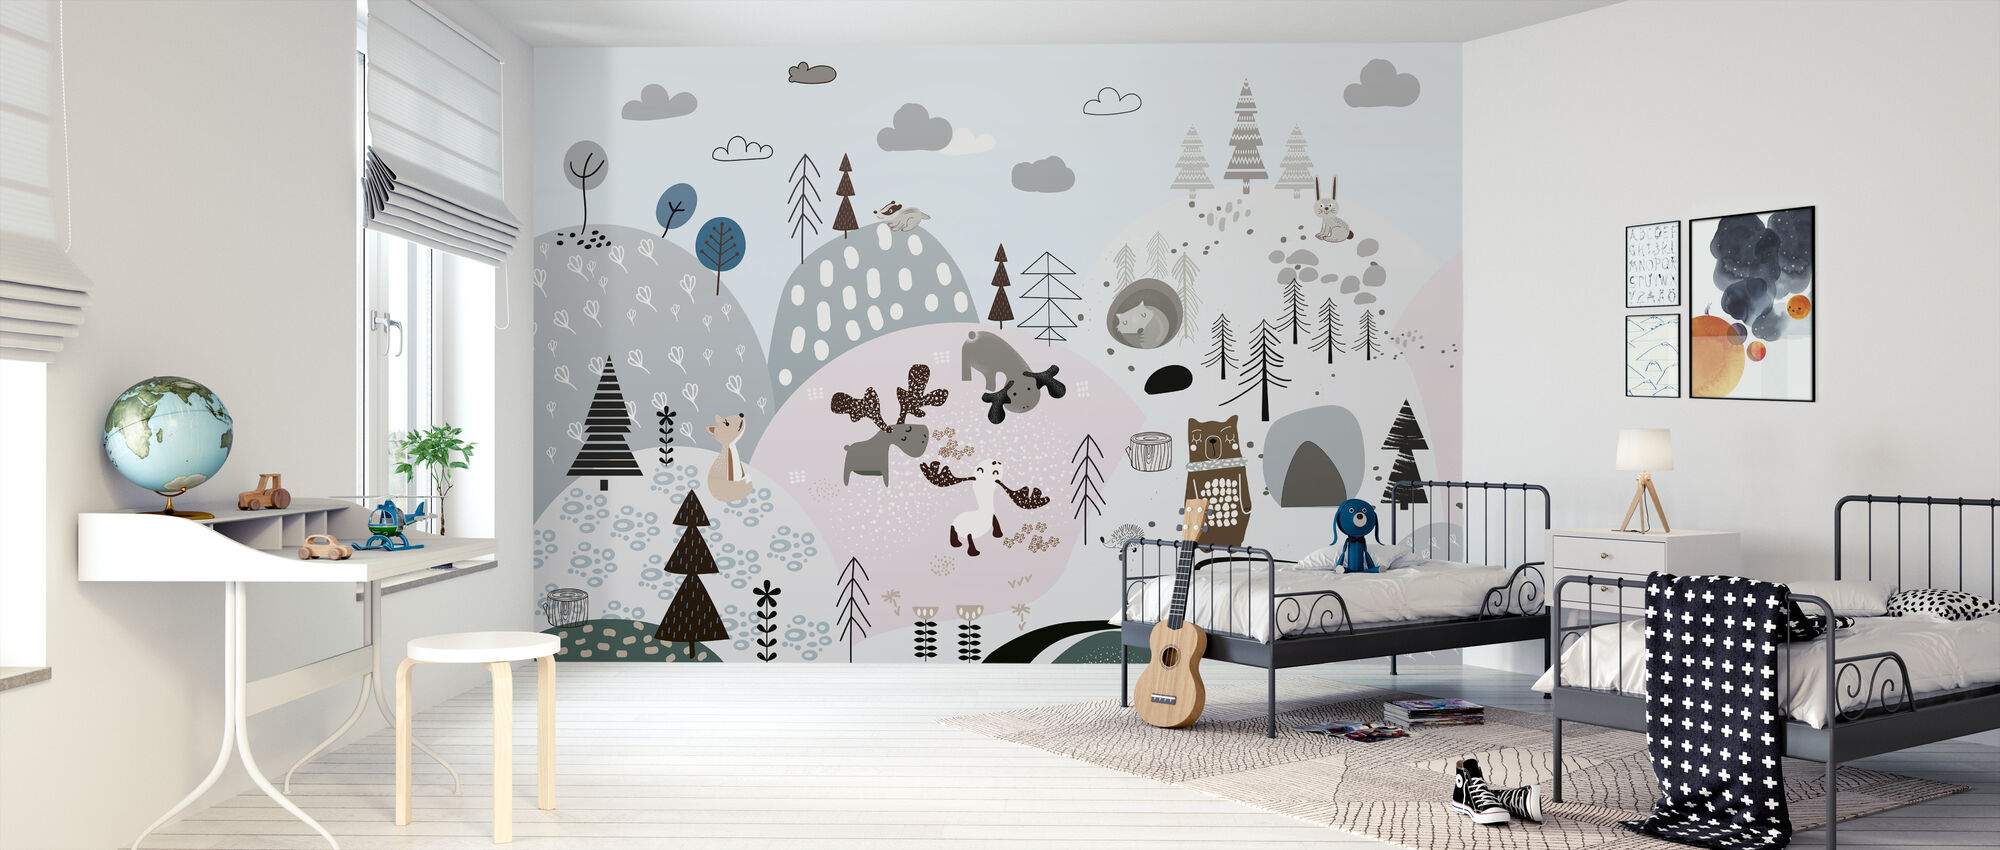 Friendly Forest Hills - Wallpaper - Kids Room